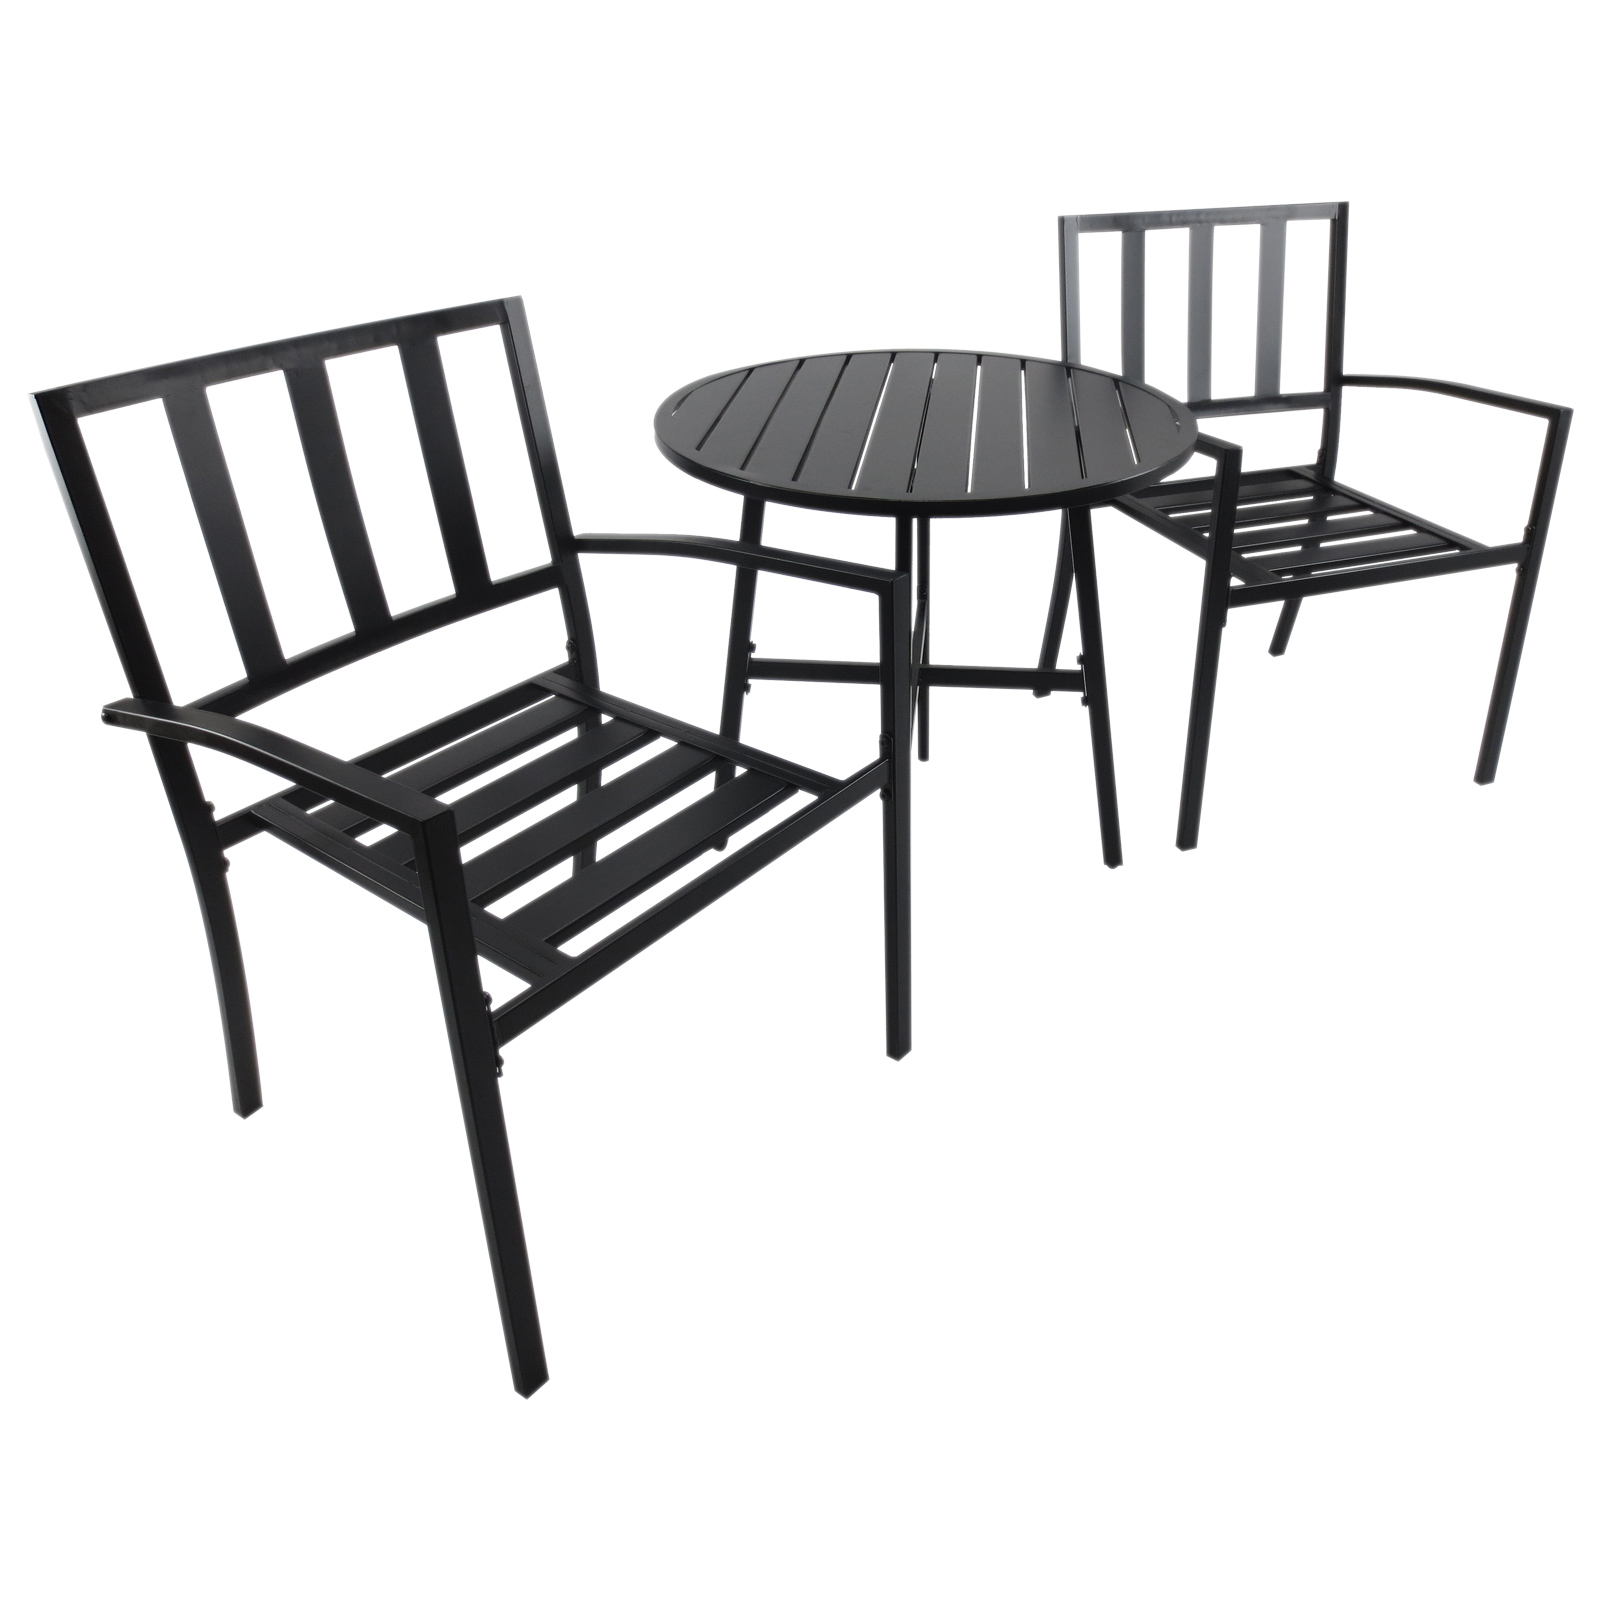 Outsunny Set Coffee Table 2 Chairs Outdoor Comfort Metal Ф70x95 Cm Black